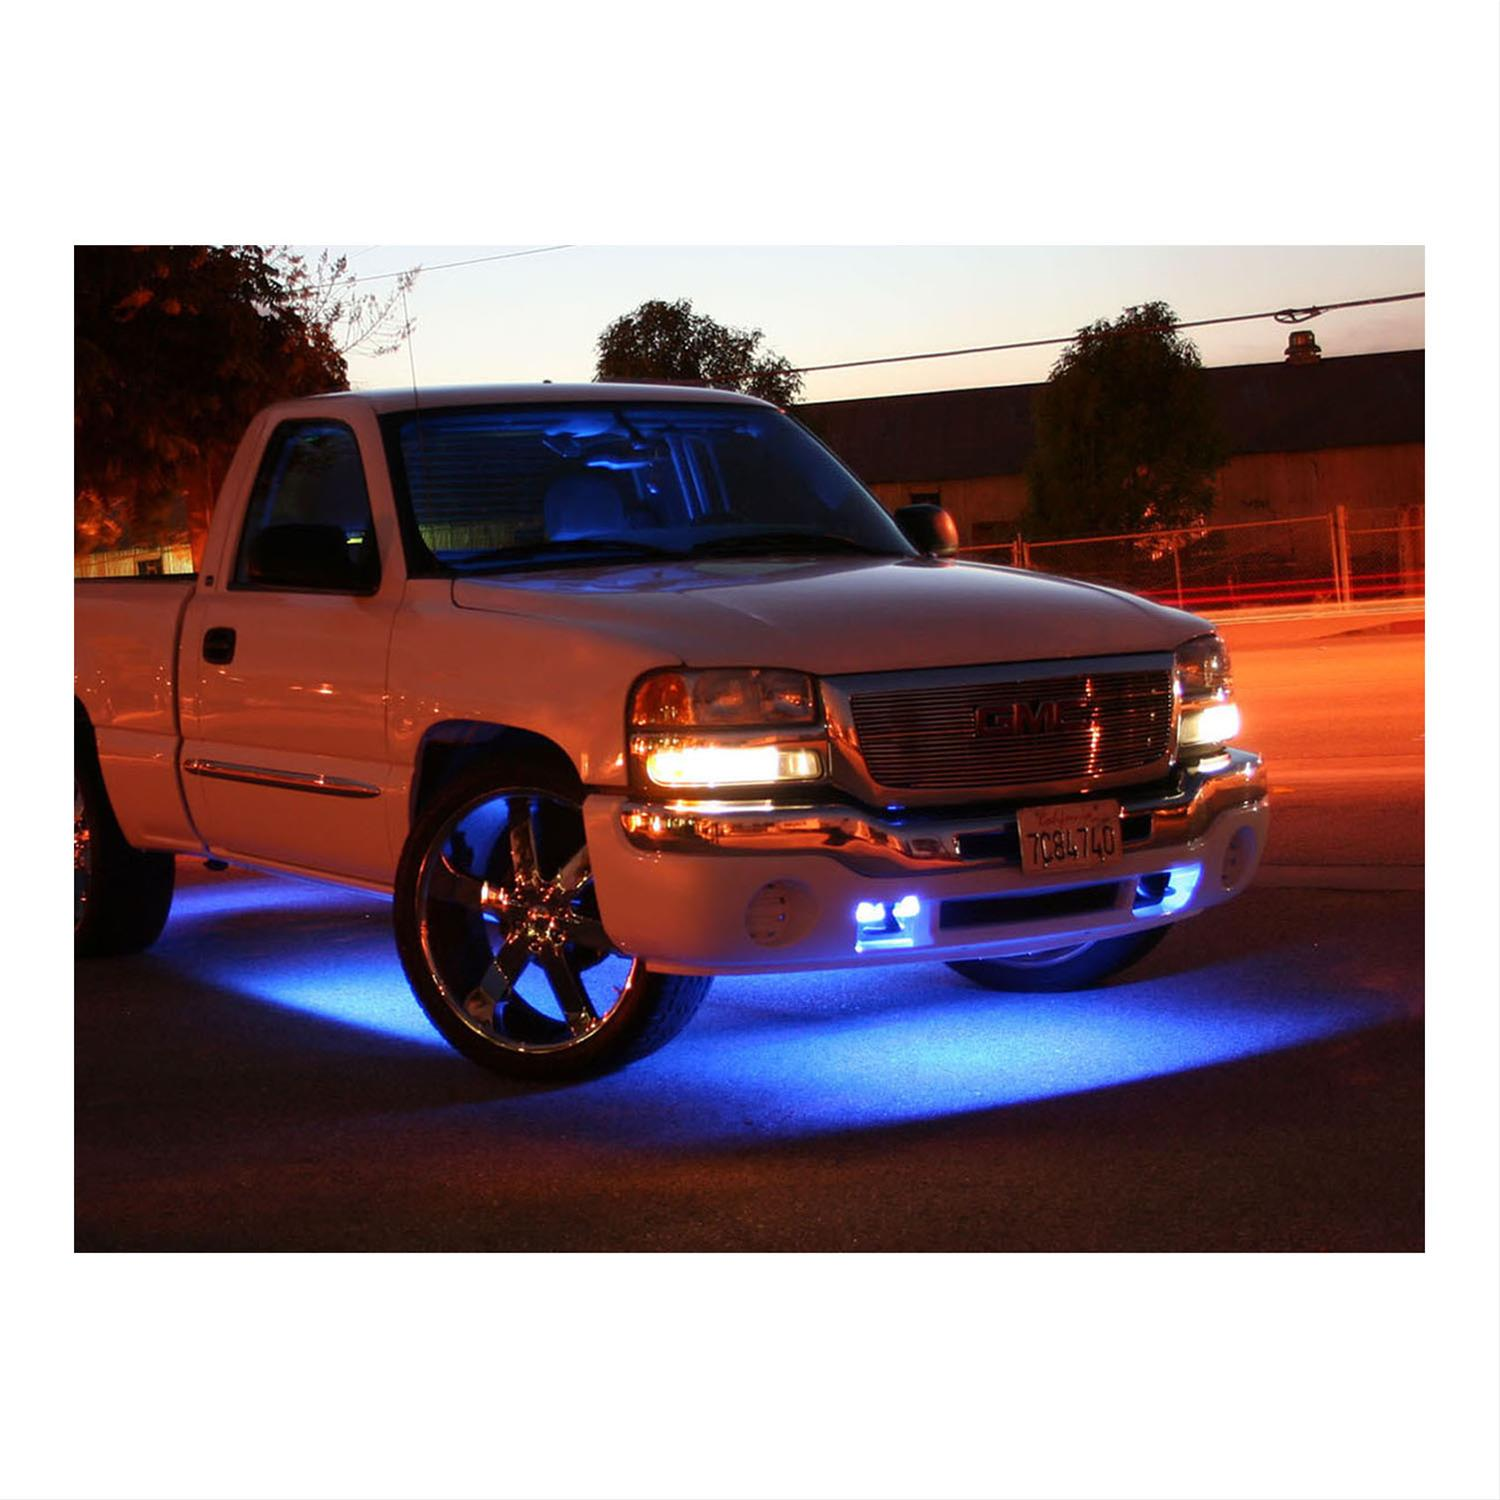 Pilot Automotive Neon Underbody Light Kits CZ-182B - Free Shipping on  Orders Over $49 at Summit Racing